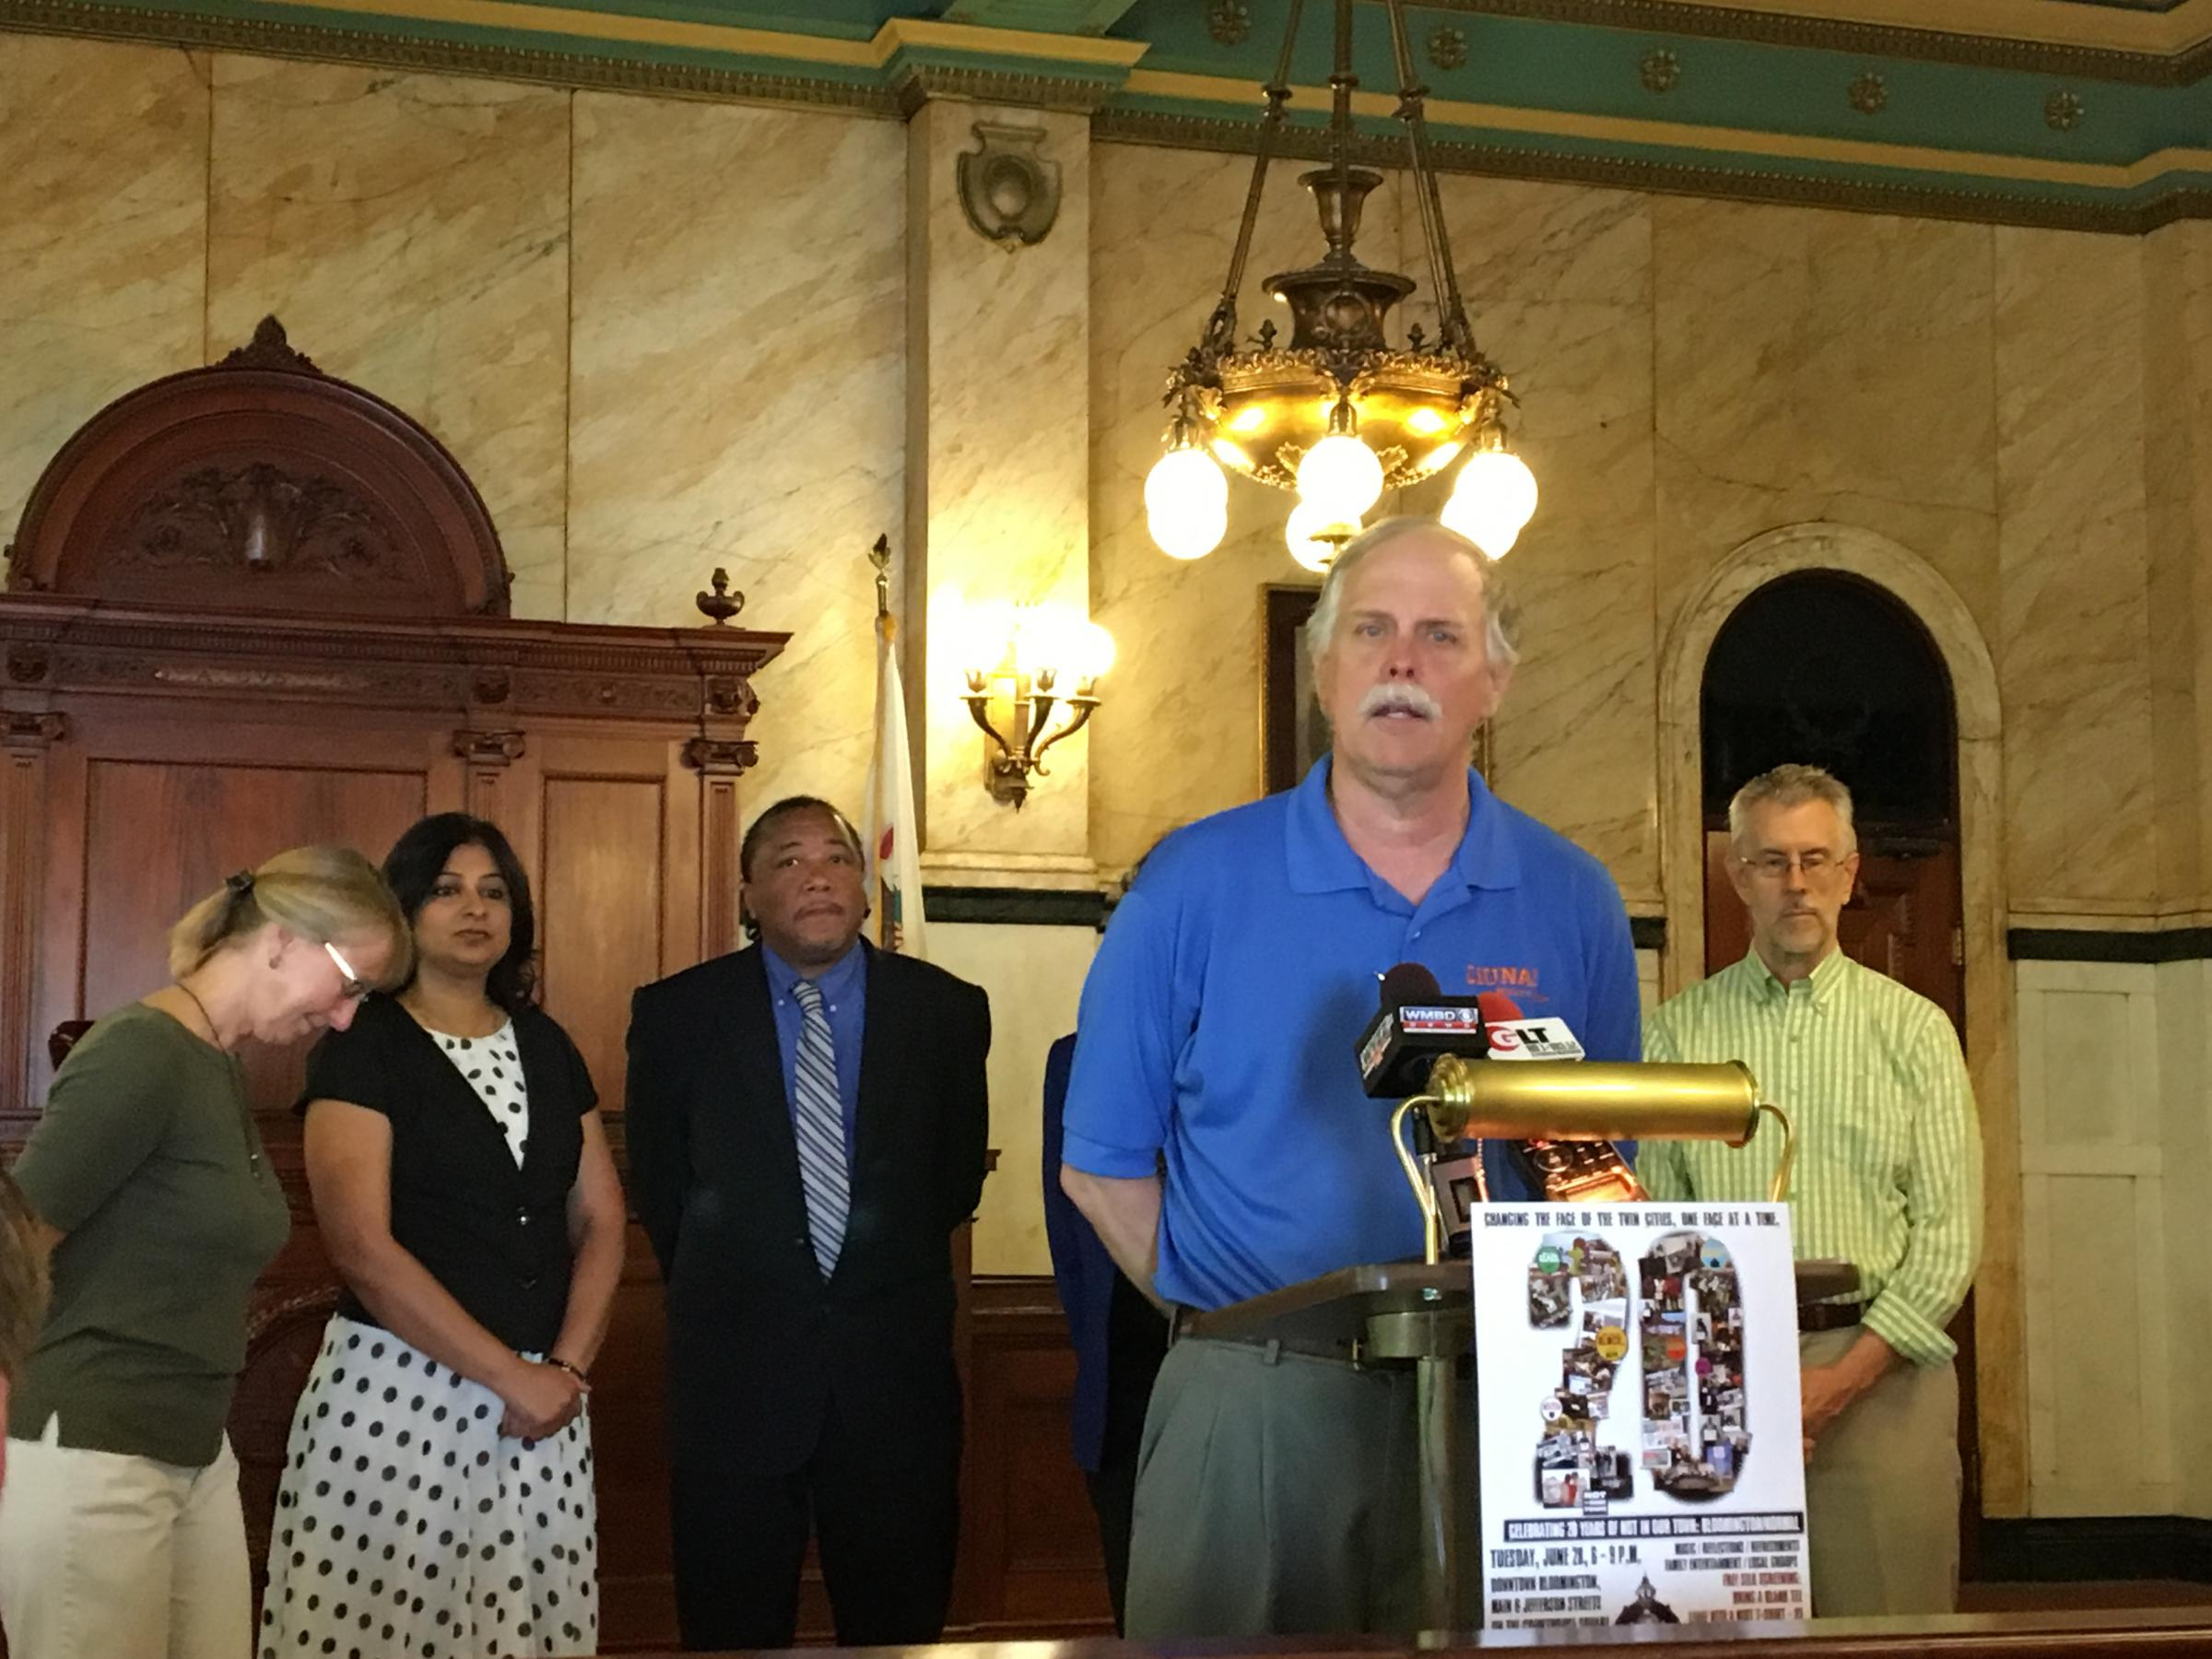 NIOTBN charter member Mike Matejka leads a news conference announcing the organization's 20th anniversary celebration June 28 on the Old Courthouse square in downtown Bloomington. (WJBC)